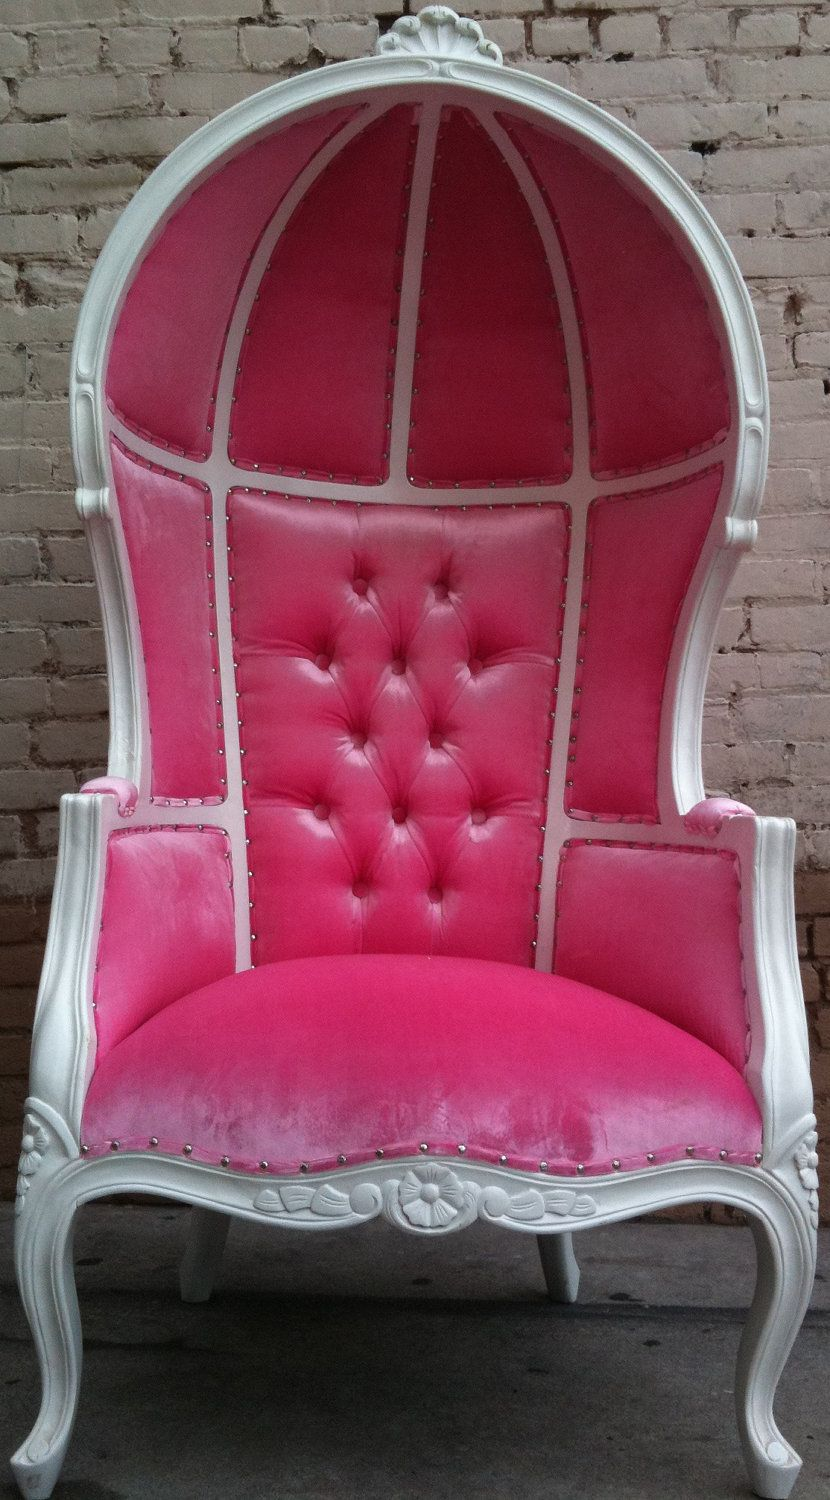 Princess throne chair - Pink White Porters Chair Princess Queen Diva Throne Egg Hooded Chair French Glamor 895 00